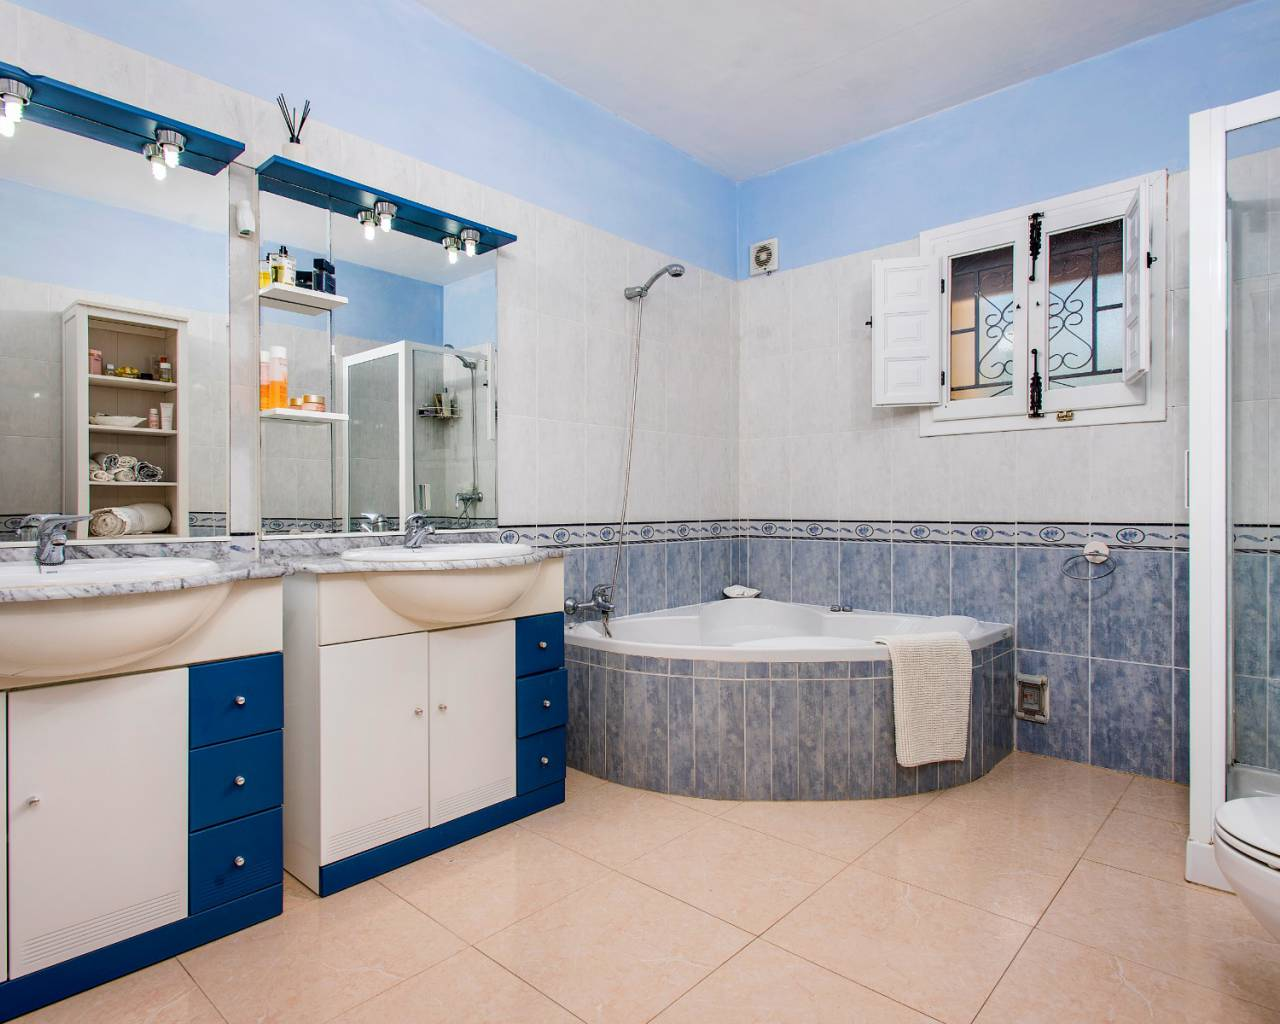 Bathroom | Country house with private pool for sale in Almoradí